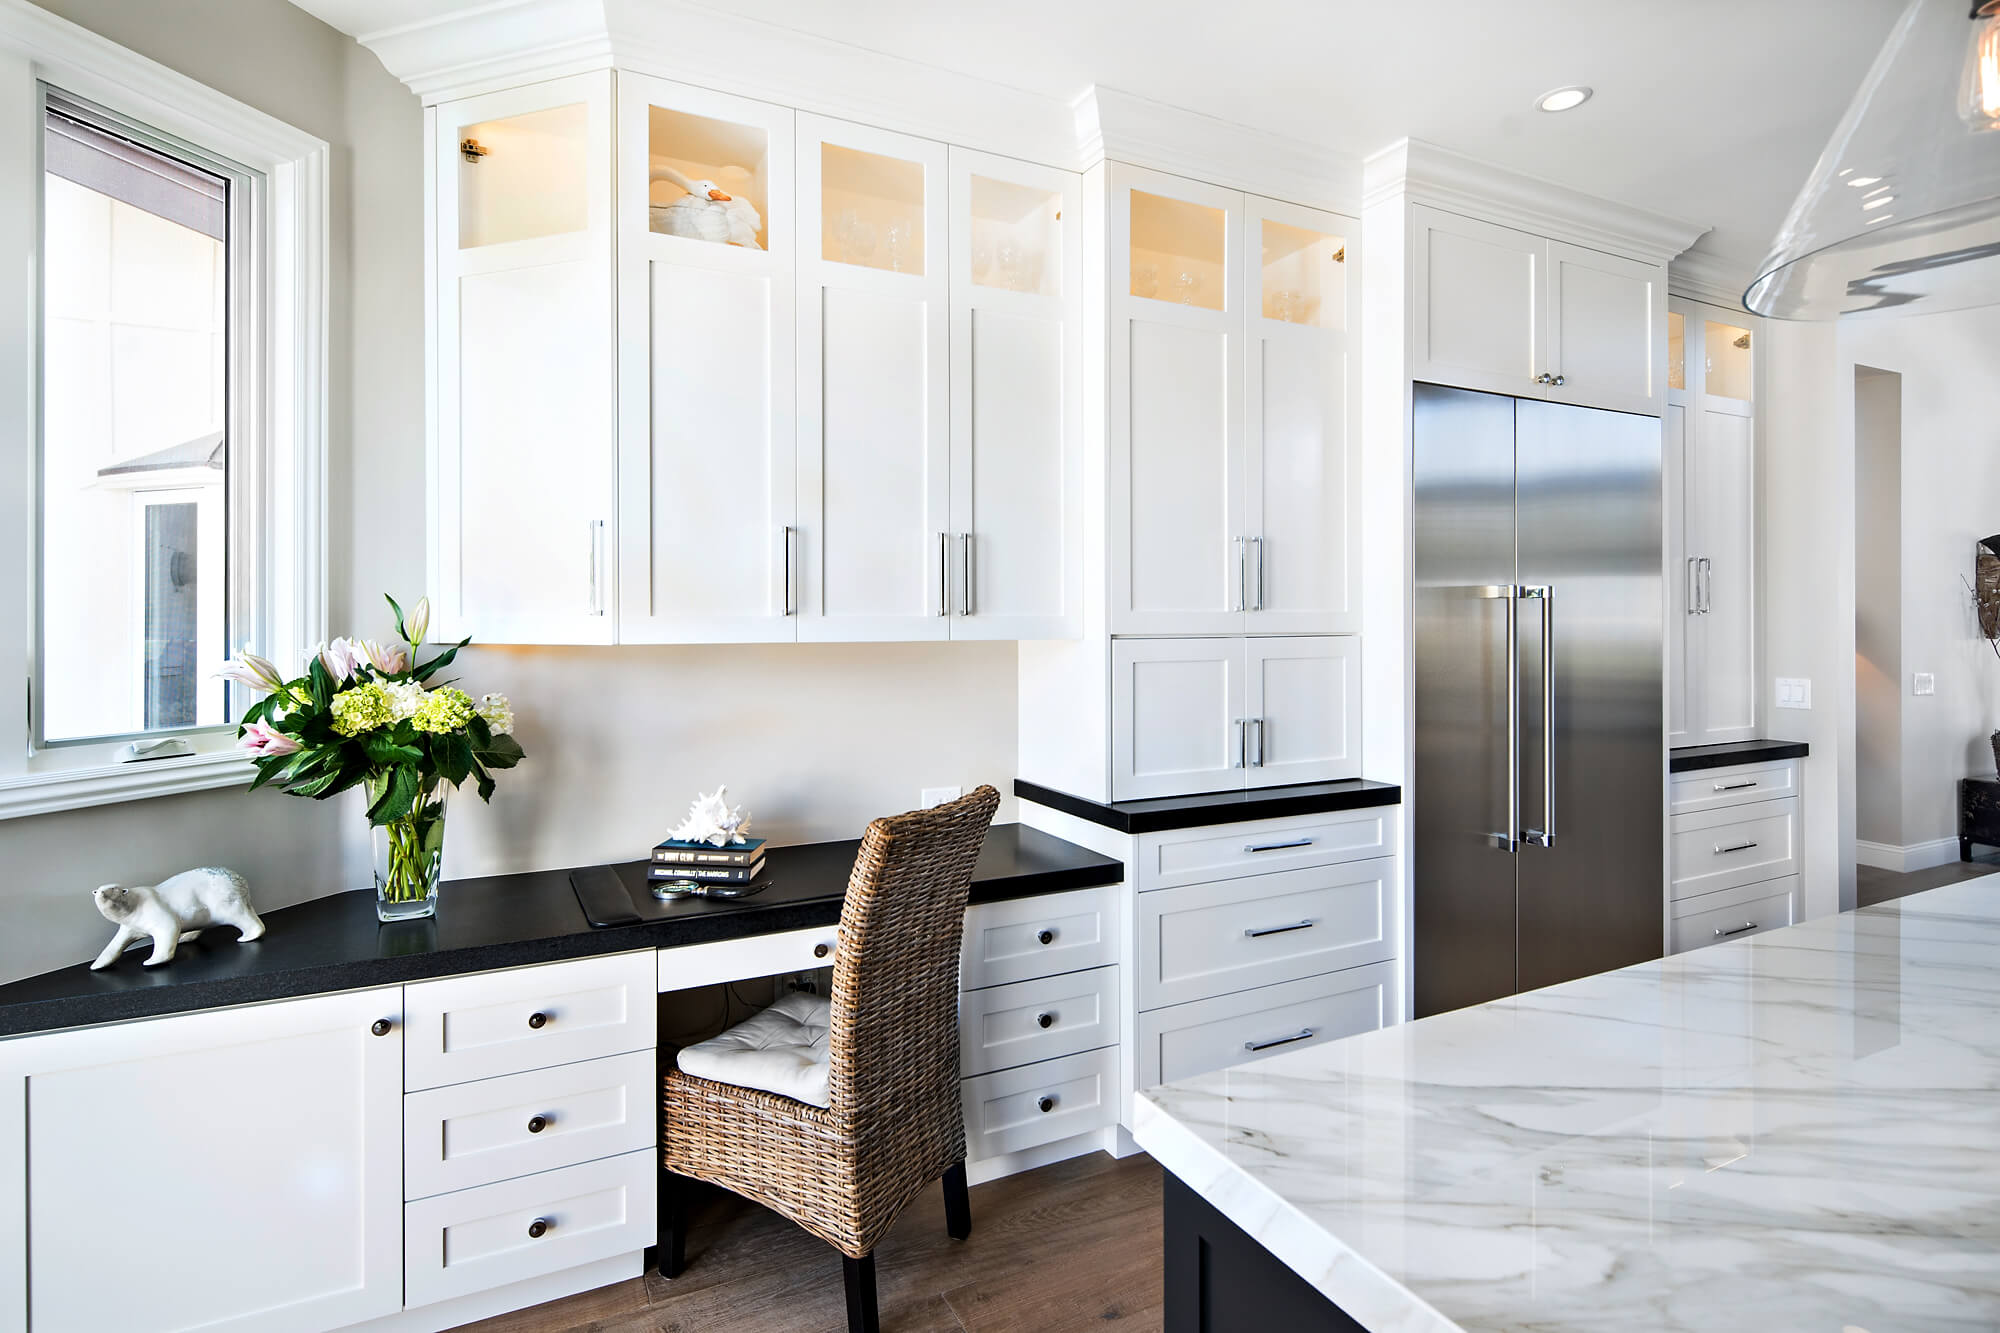 Remodeling in place has increased demand for desks in kitchens.